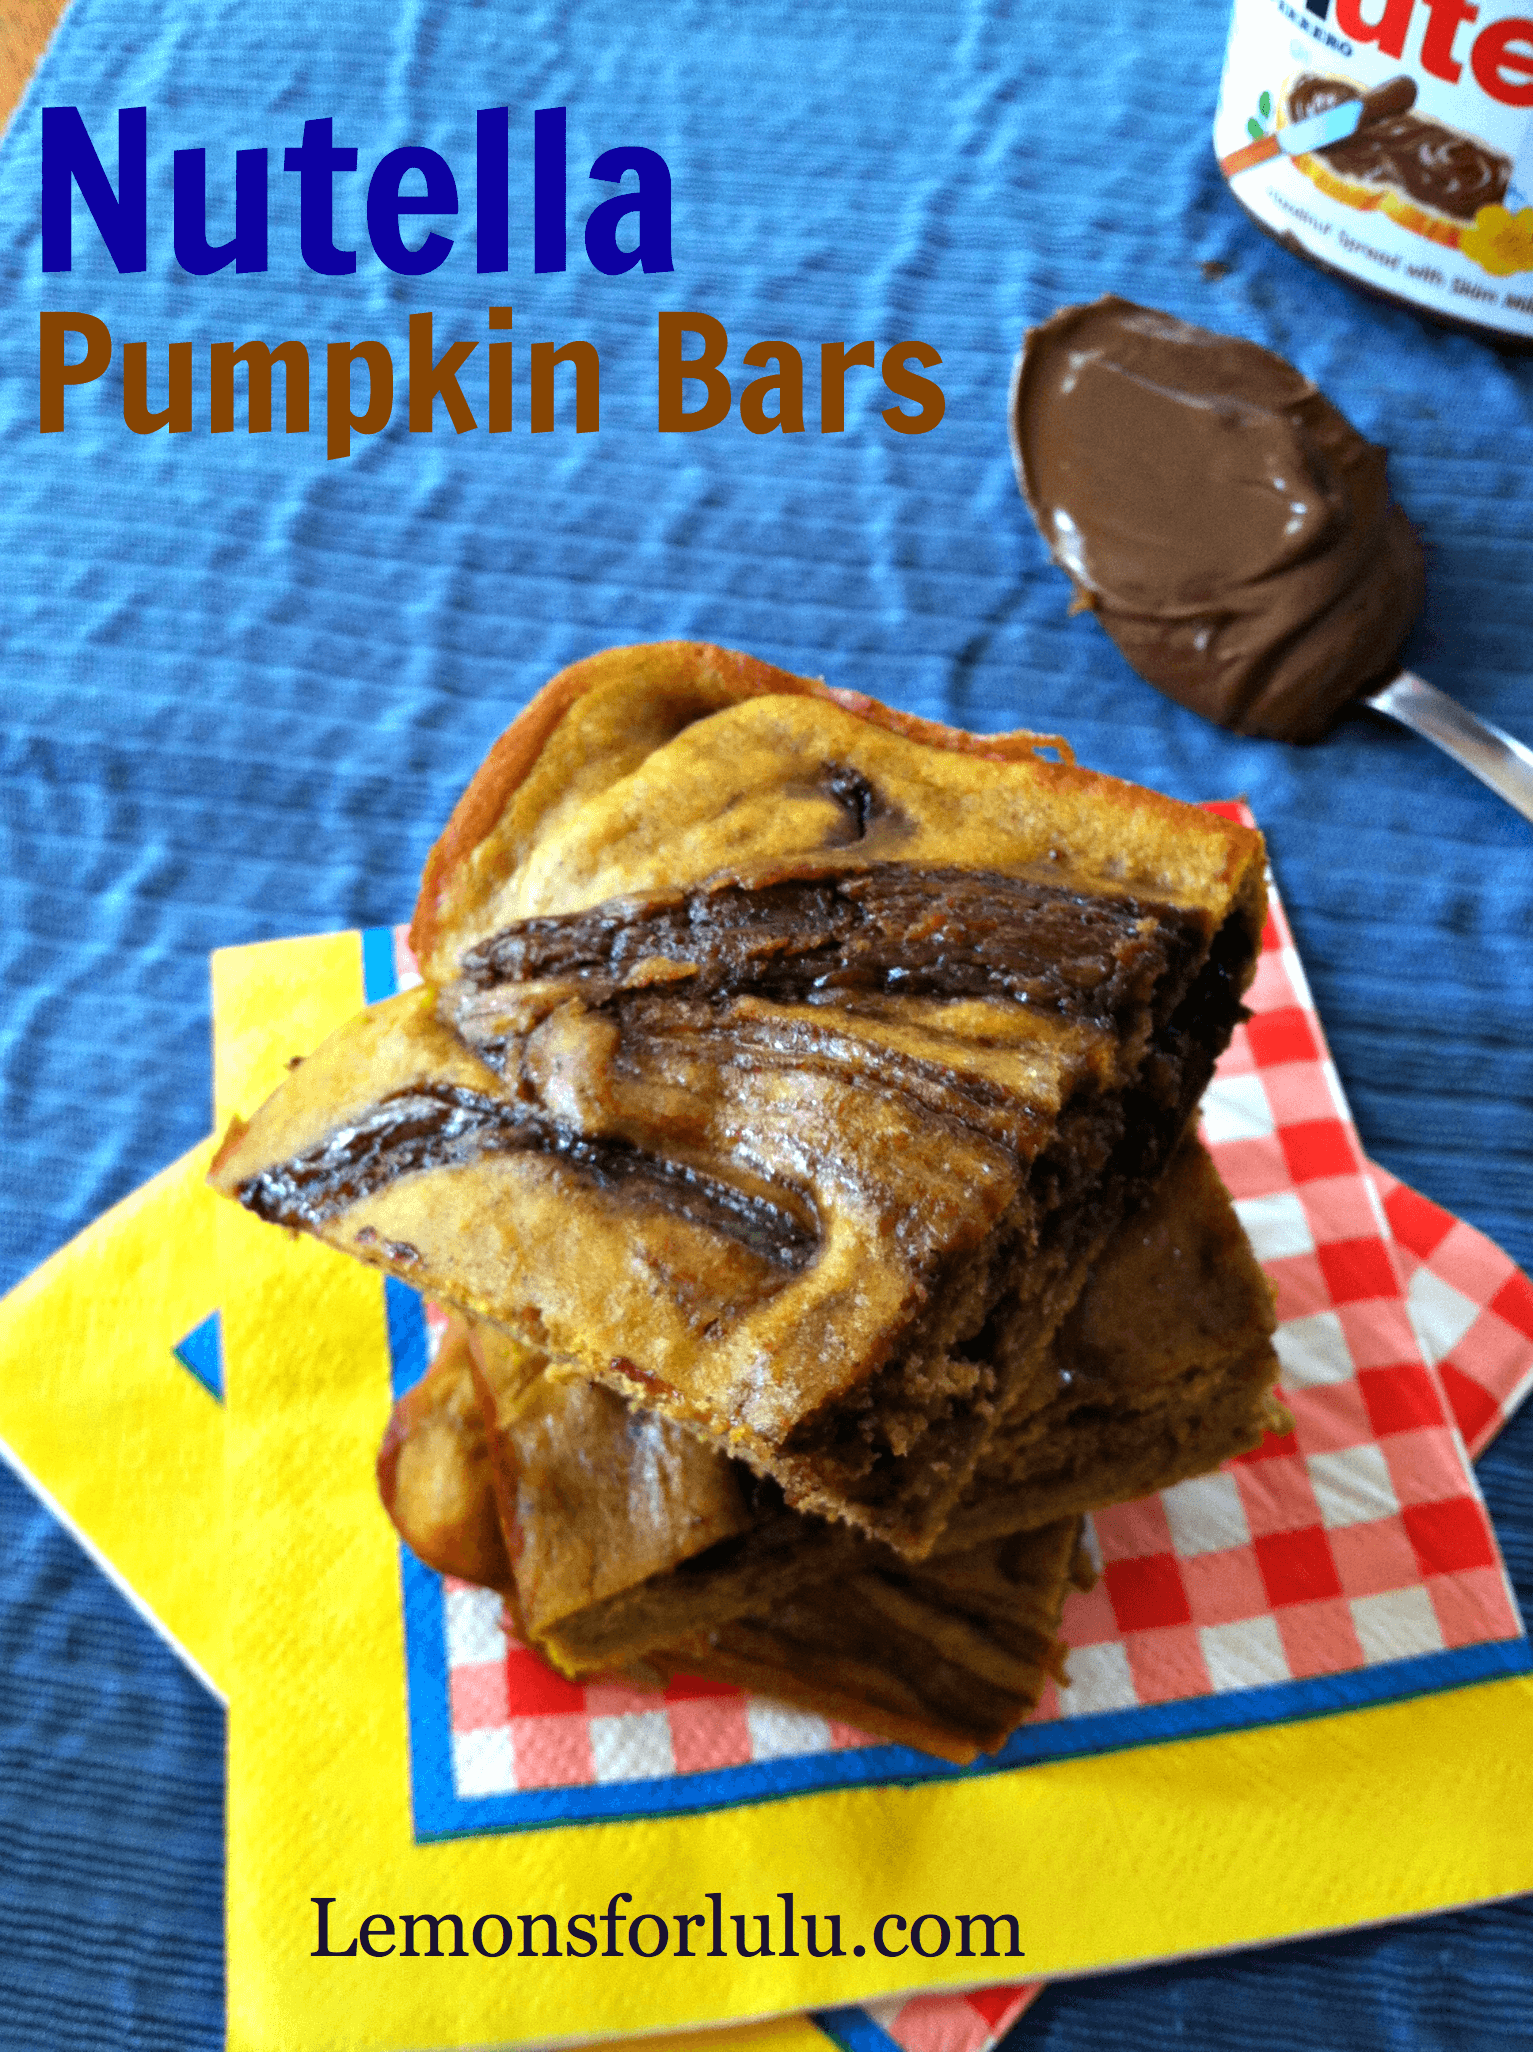 Nutella Pumpkin Bars